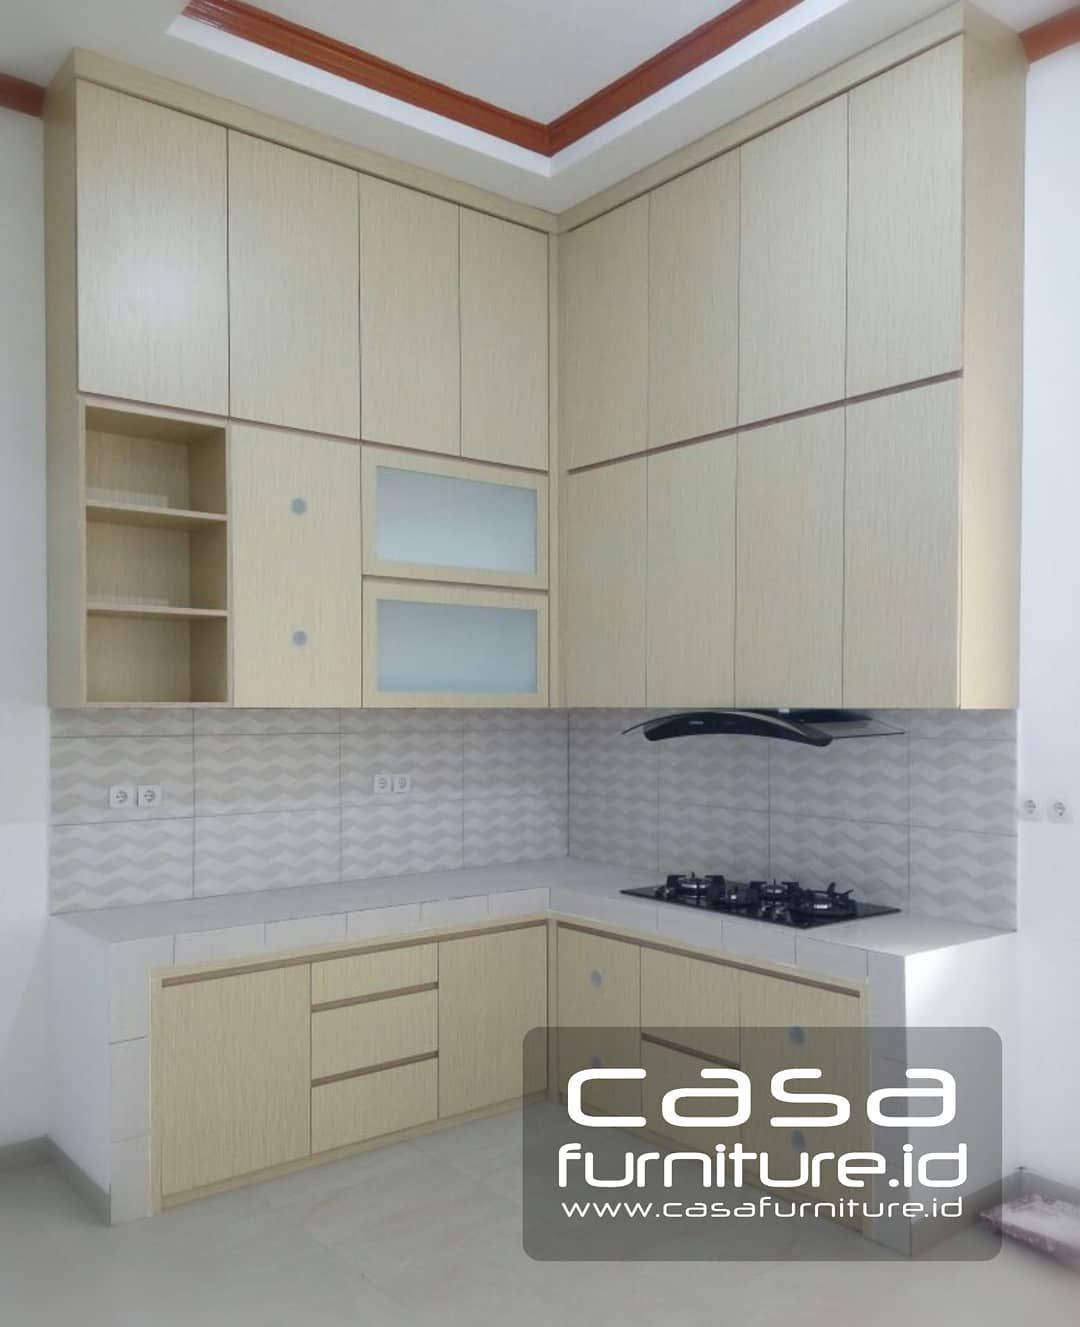 Kitchen setlemari minimalis di instagram kitchen set letter l poris plawad tangerang